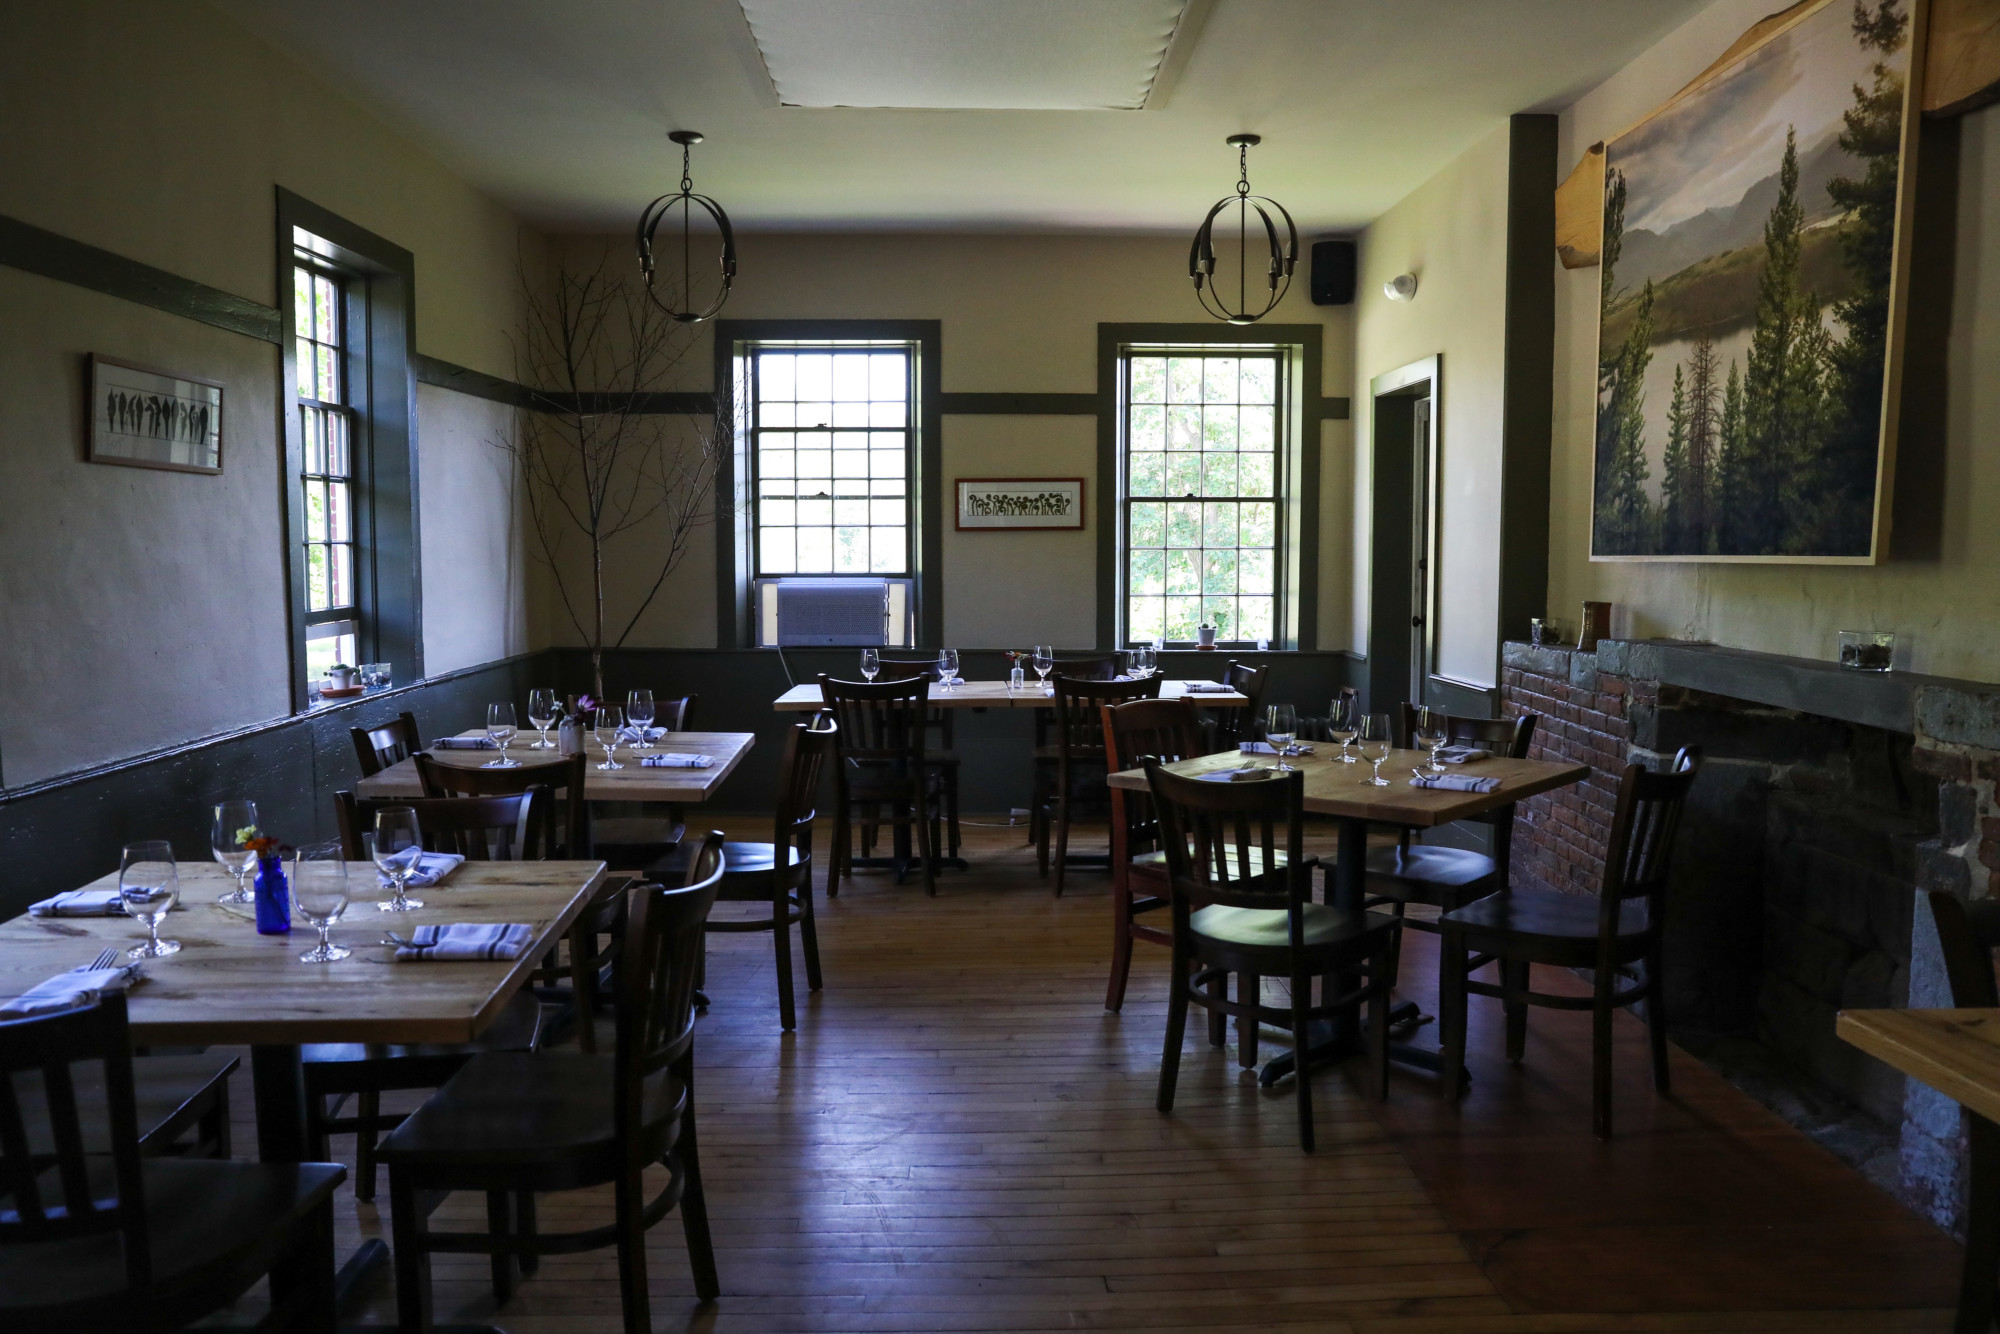 Walk Into Dining Room From Front Door By Ultra Local Delicious Wild Roots Jackson House